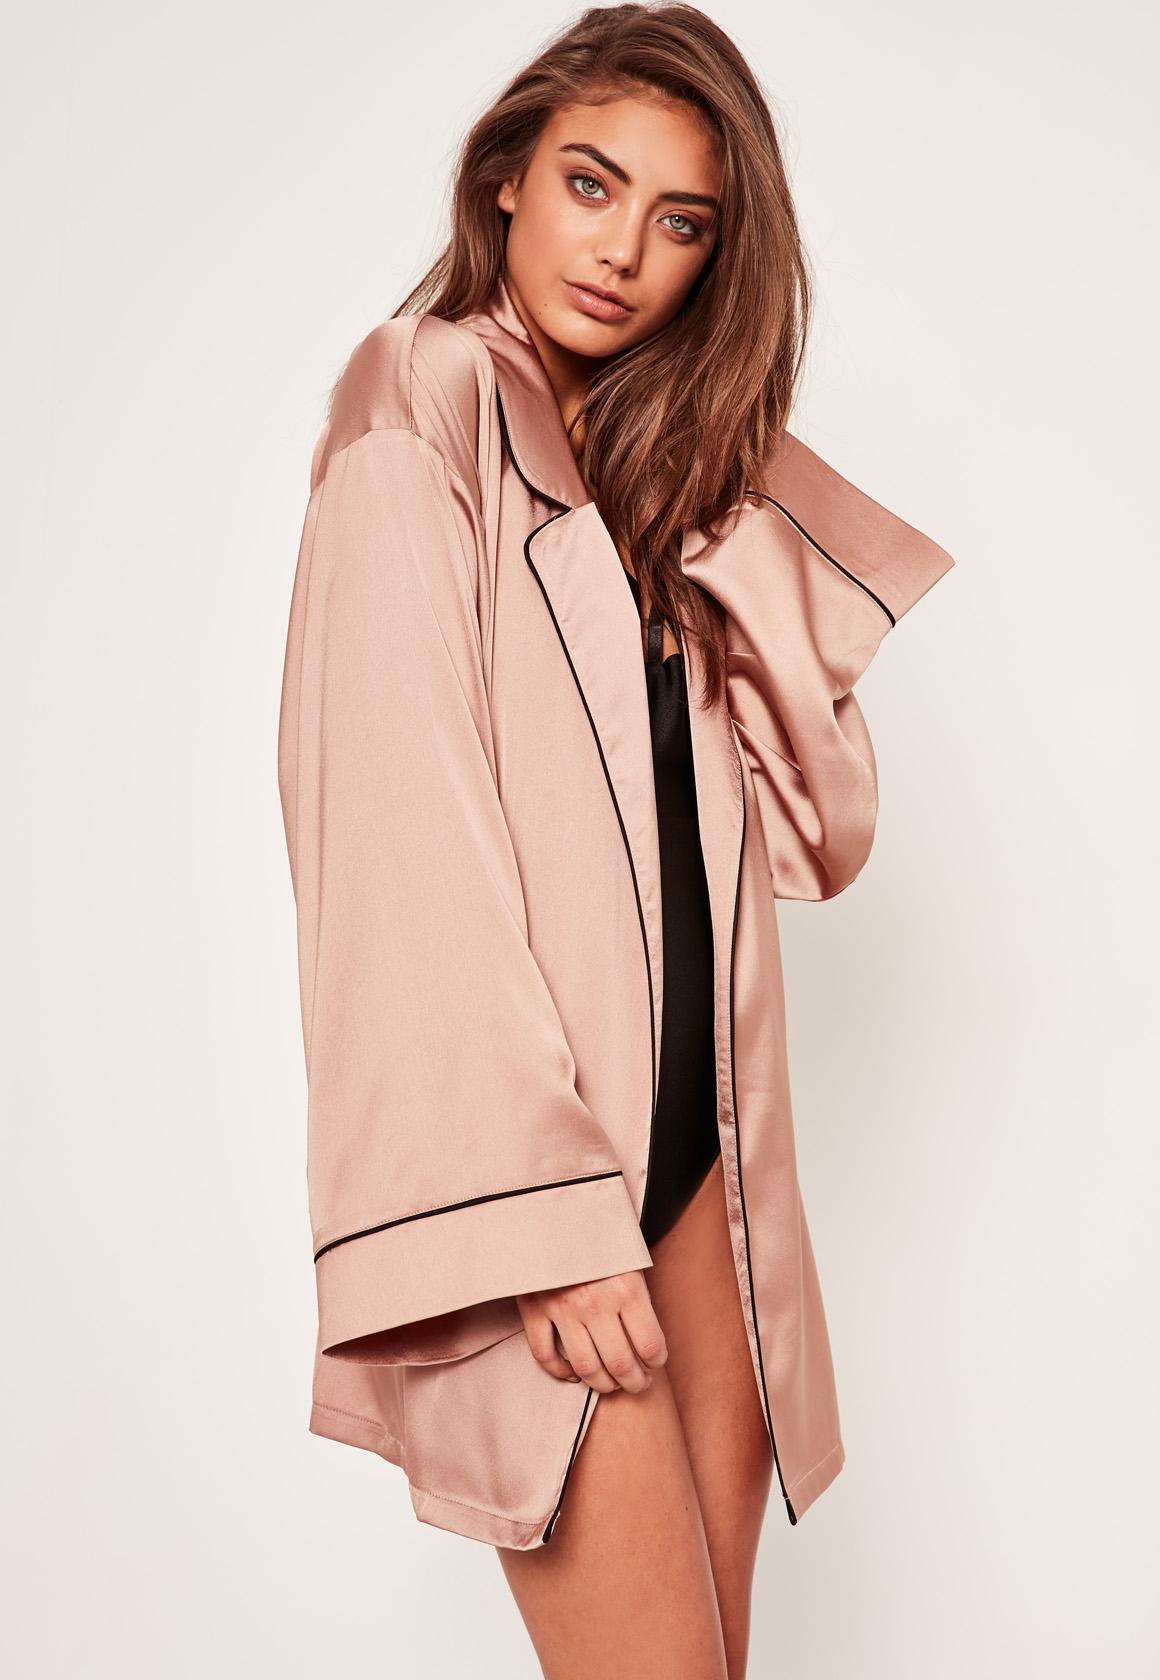 Lyst - Missguided Pink Slogan Contrast Piping Silk Robe in Pink 72d56f92b